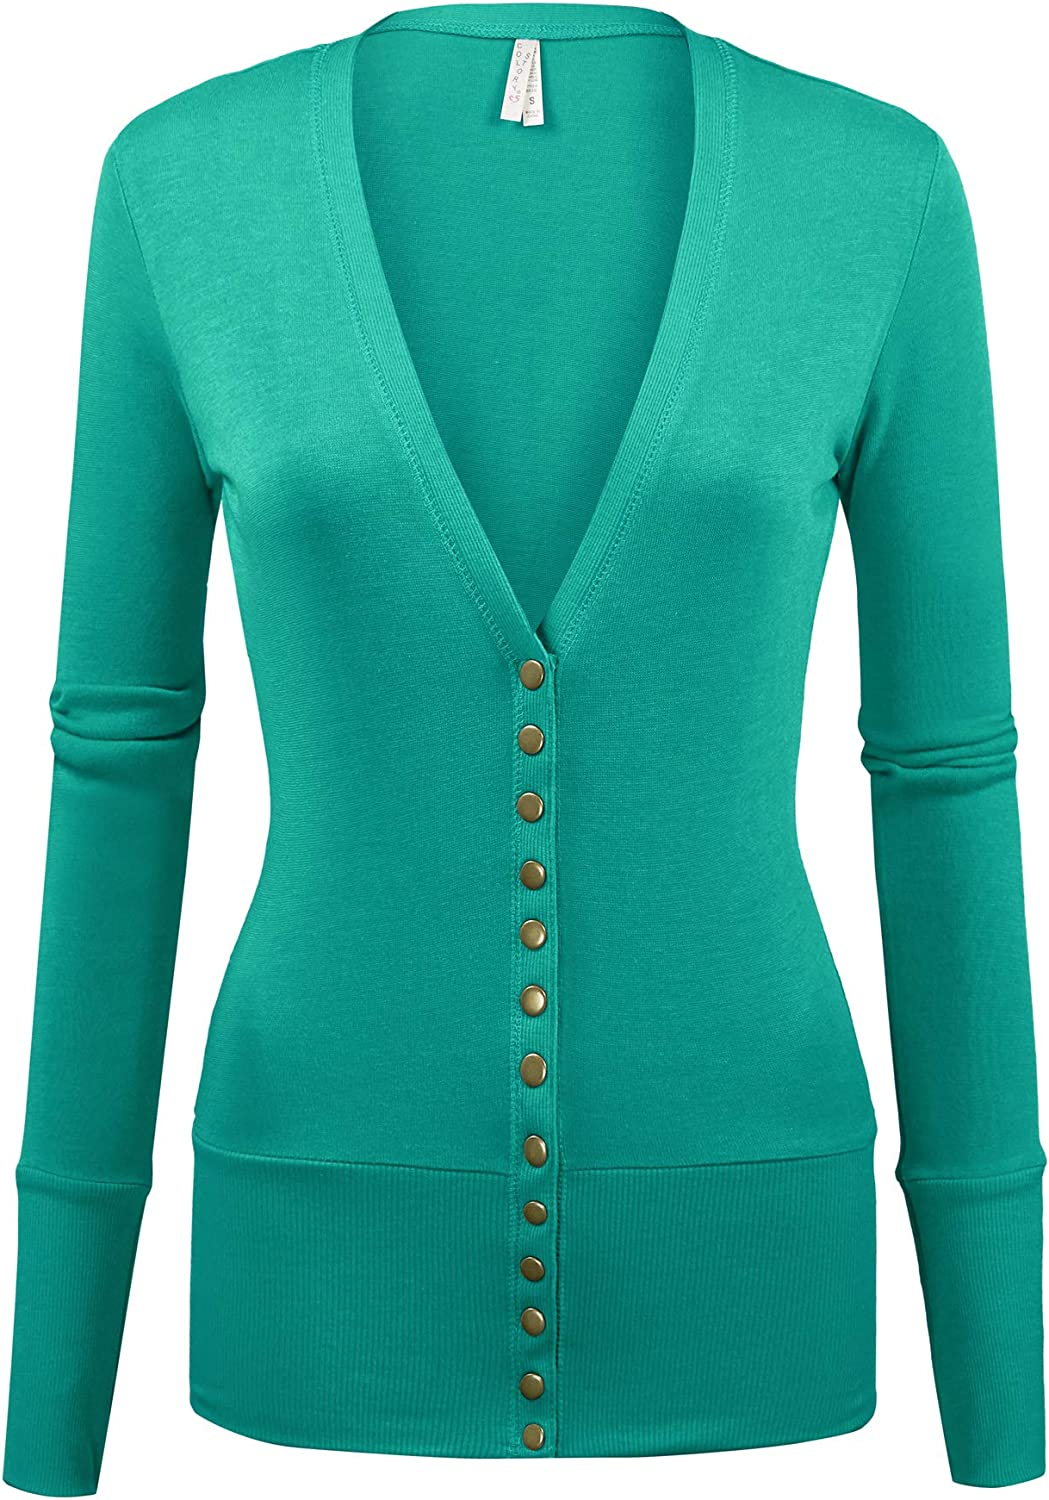 COLOR STORY Women's Basic Long Sleeve Snap Button Down Solid Color Knit Sweater Cardigan